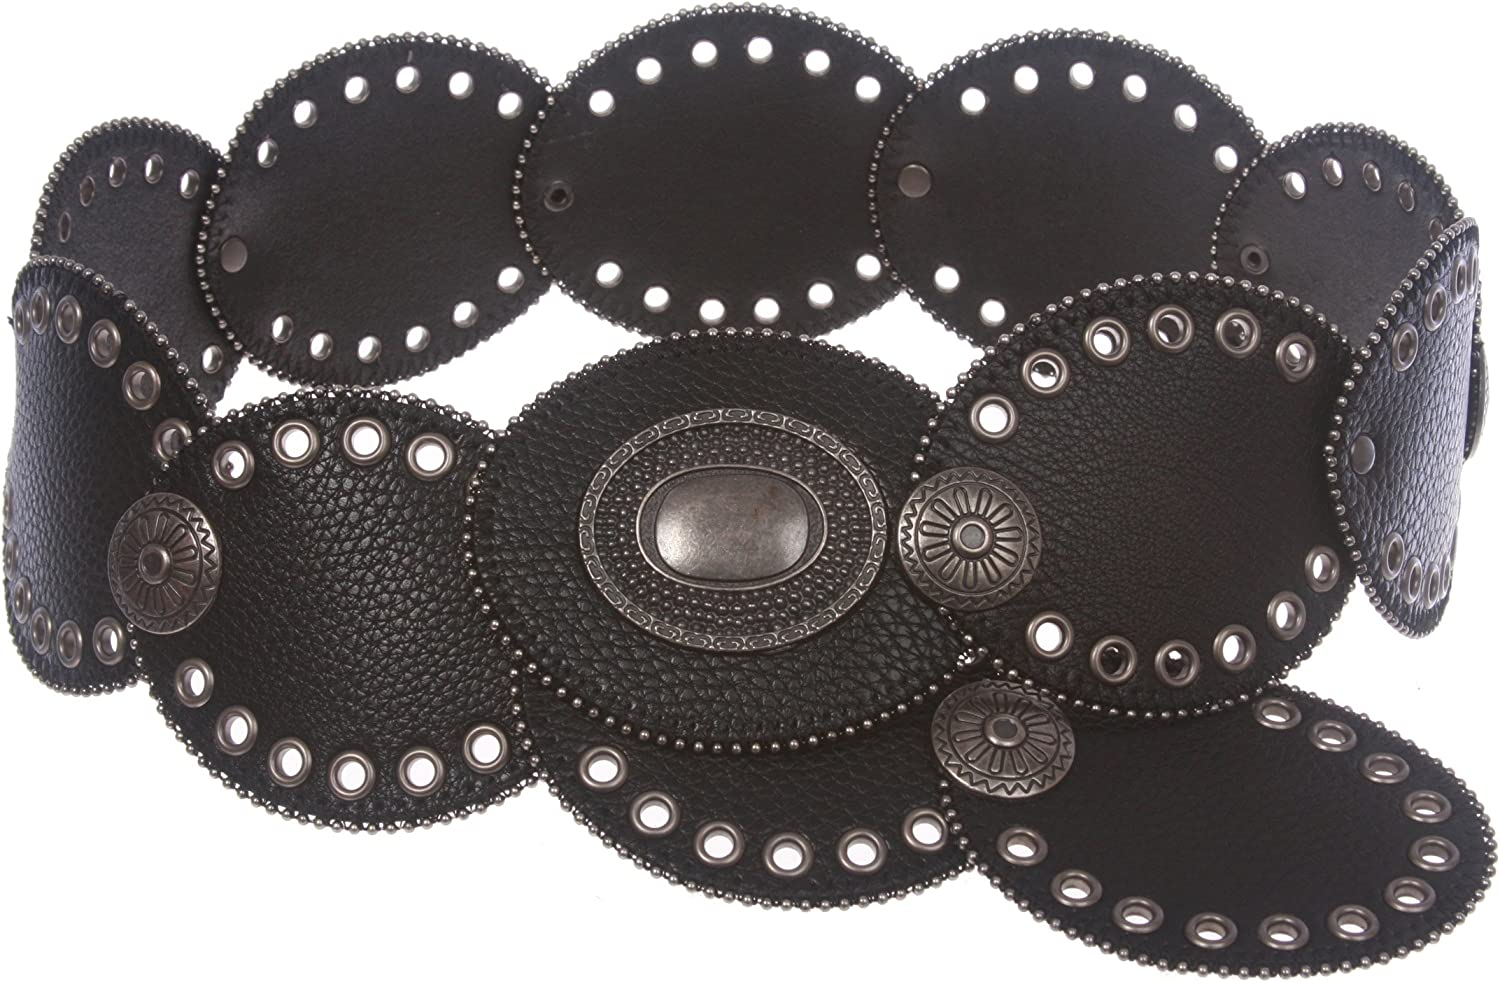 3 1 4  Wide Boho Oval Disc Concho Leather Disk Link Fashion Belt, Black   1X  58 1 2 ENDTOEND